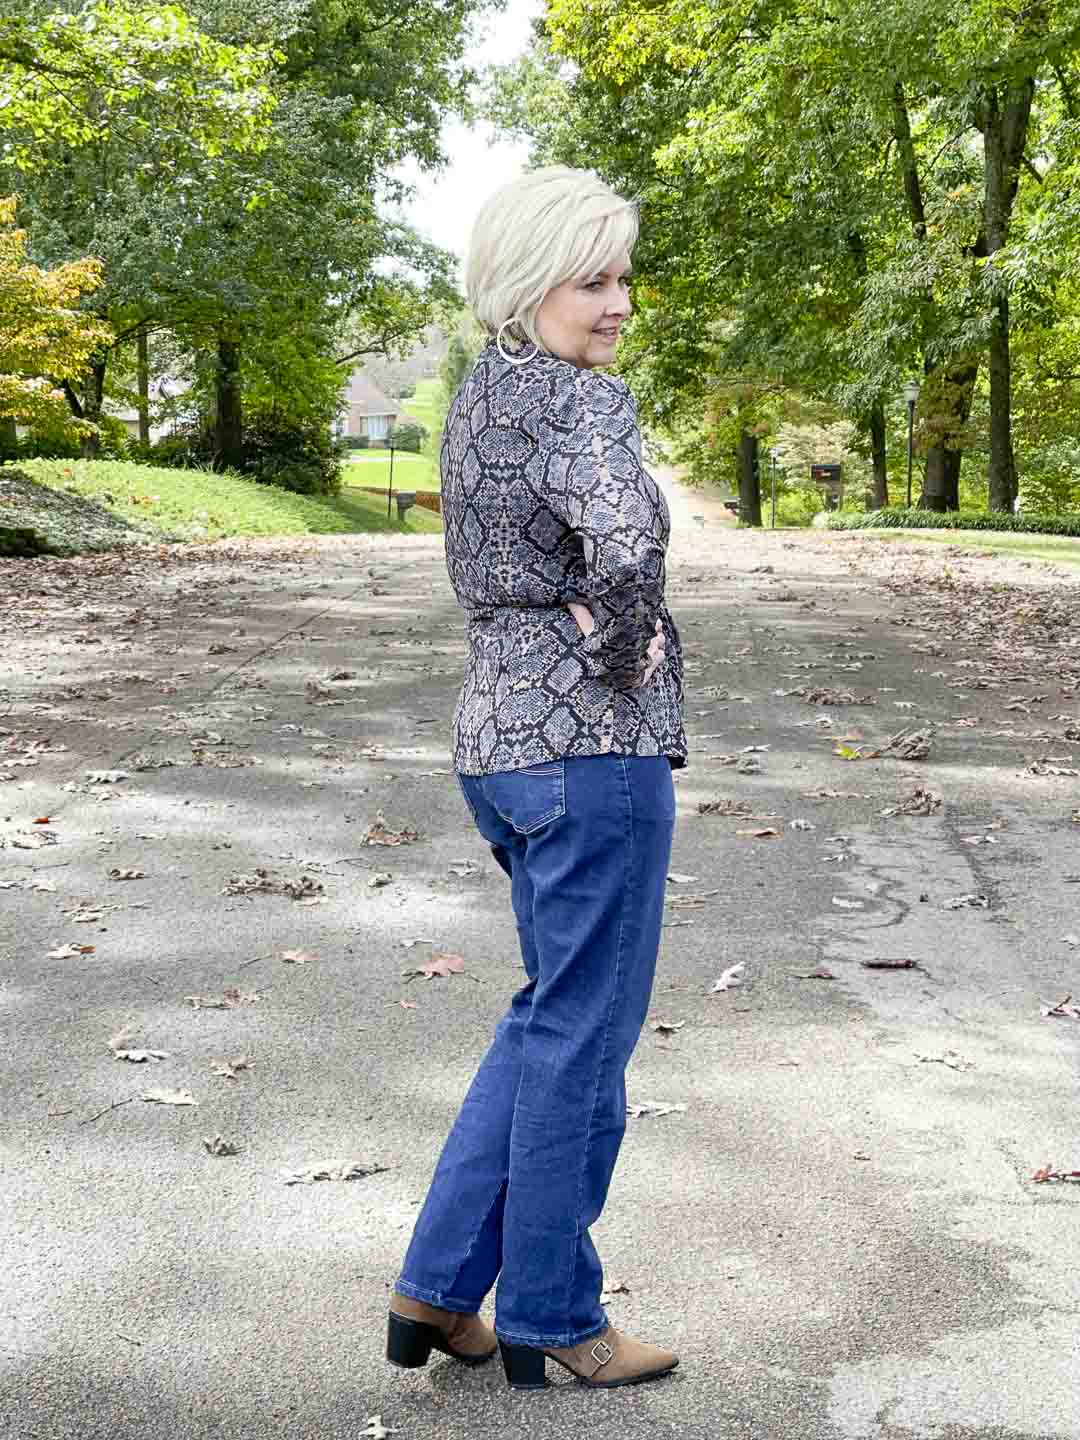 Over 40 Fashion Blogger, Tania Stephens, is showing her recent Walmart haul including this snake print wrap top, bootcut jeans, and ankle boots